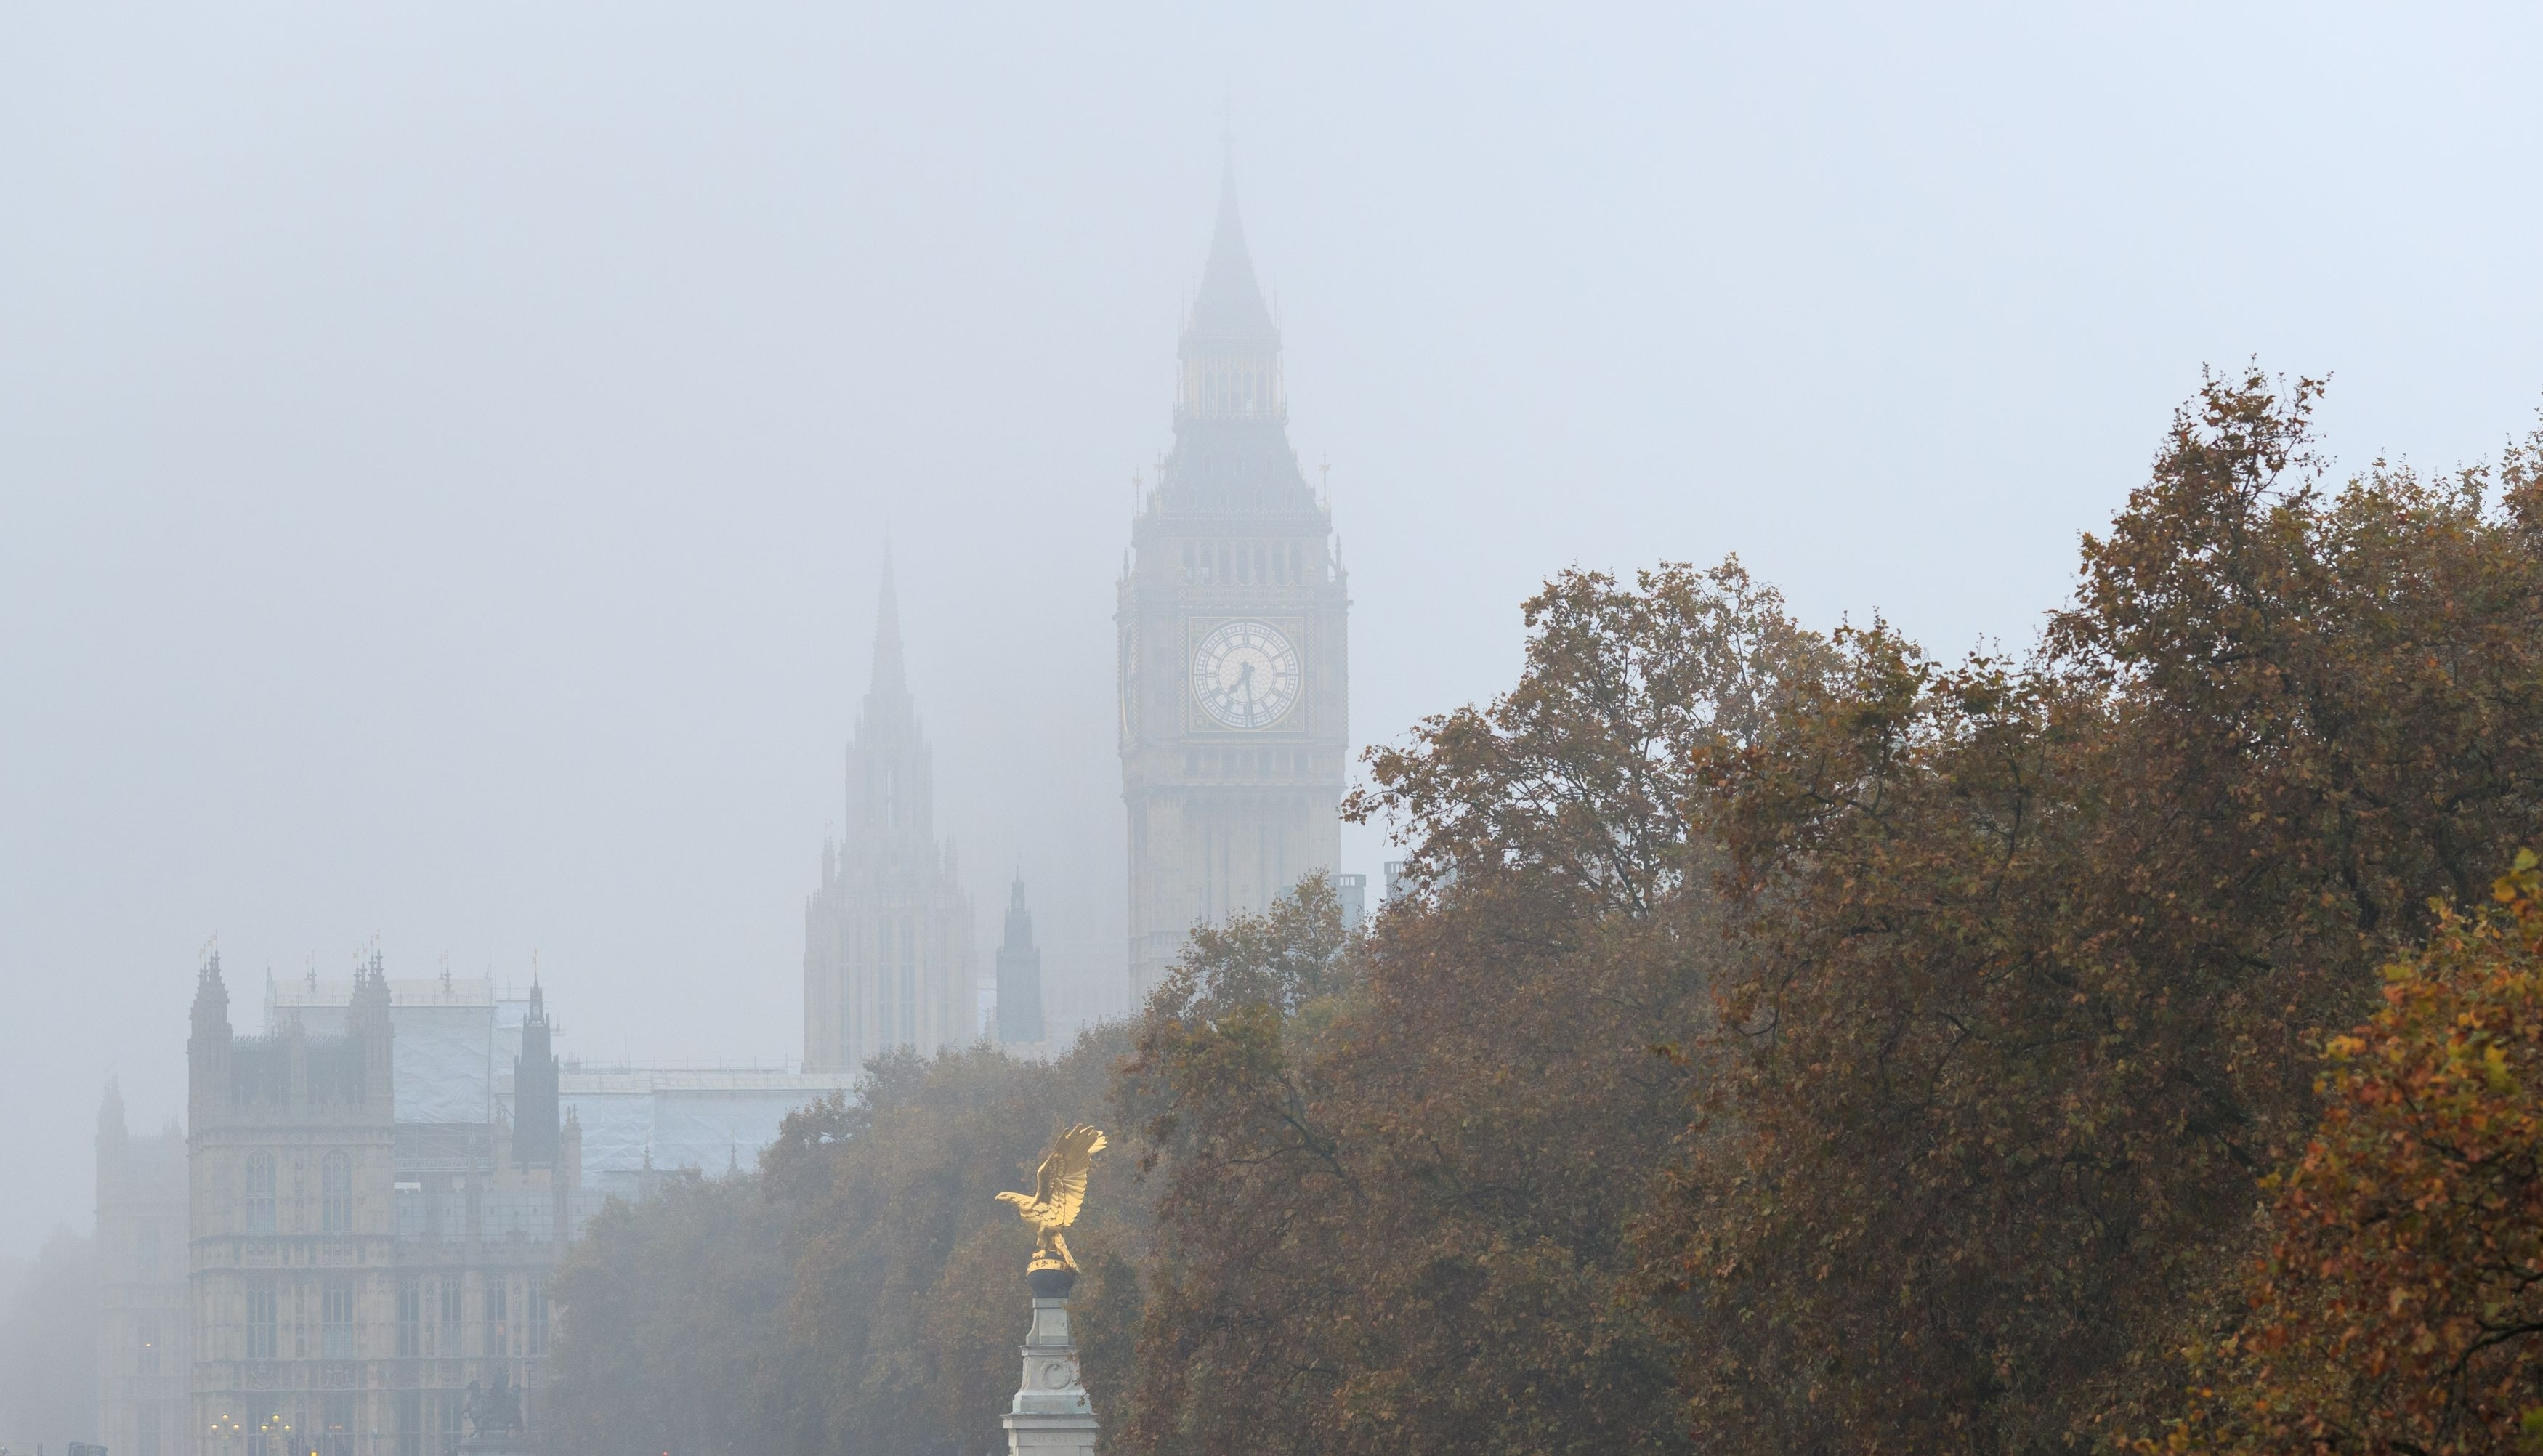 Big Ben in London, is seen through thick fog.